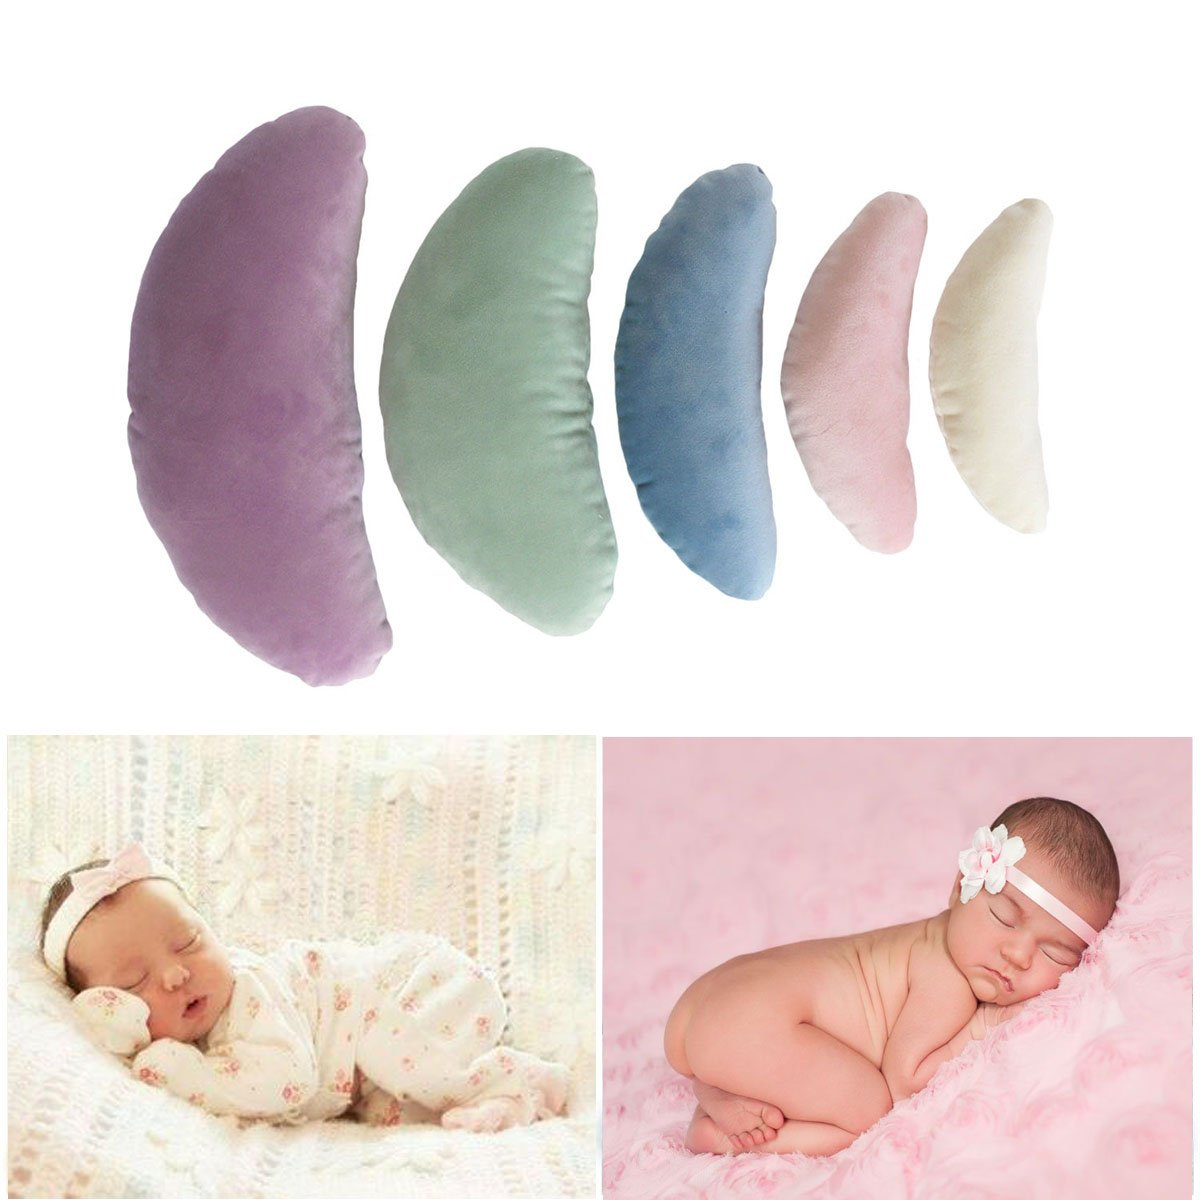 Tee-Moo 5 PCS Newborn Baby Photography Props, Crescent Posing Pillow Basket Filler Silk Props Multi-Color